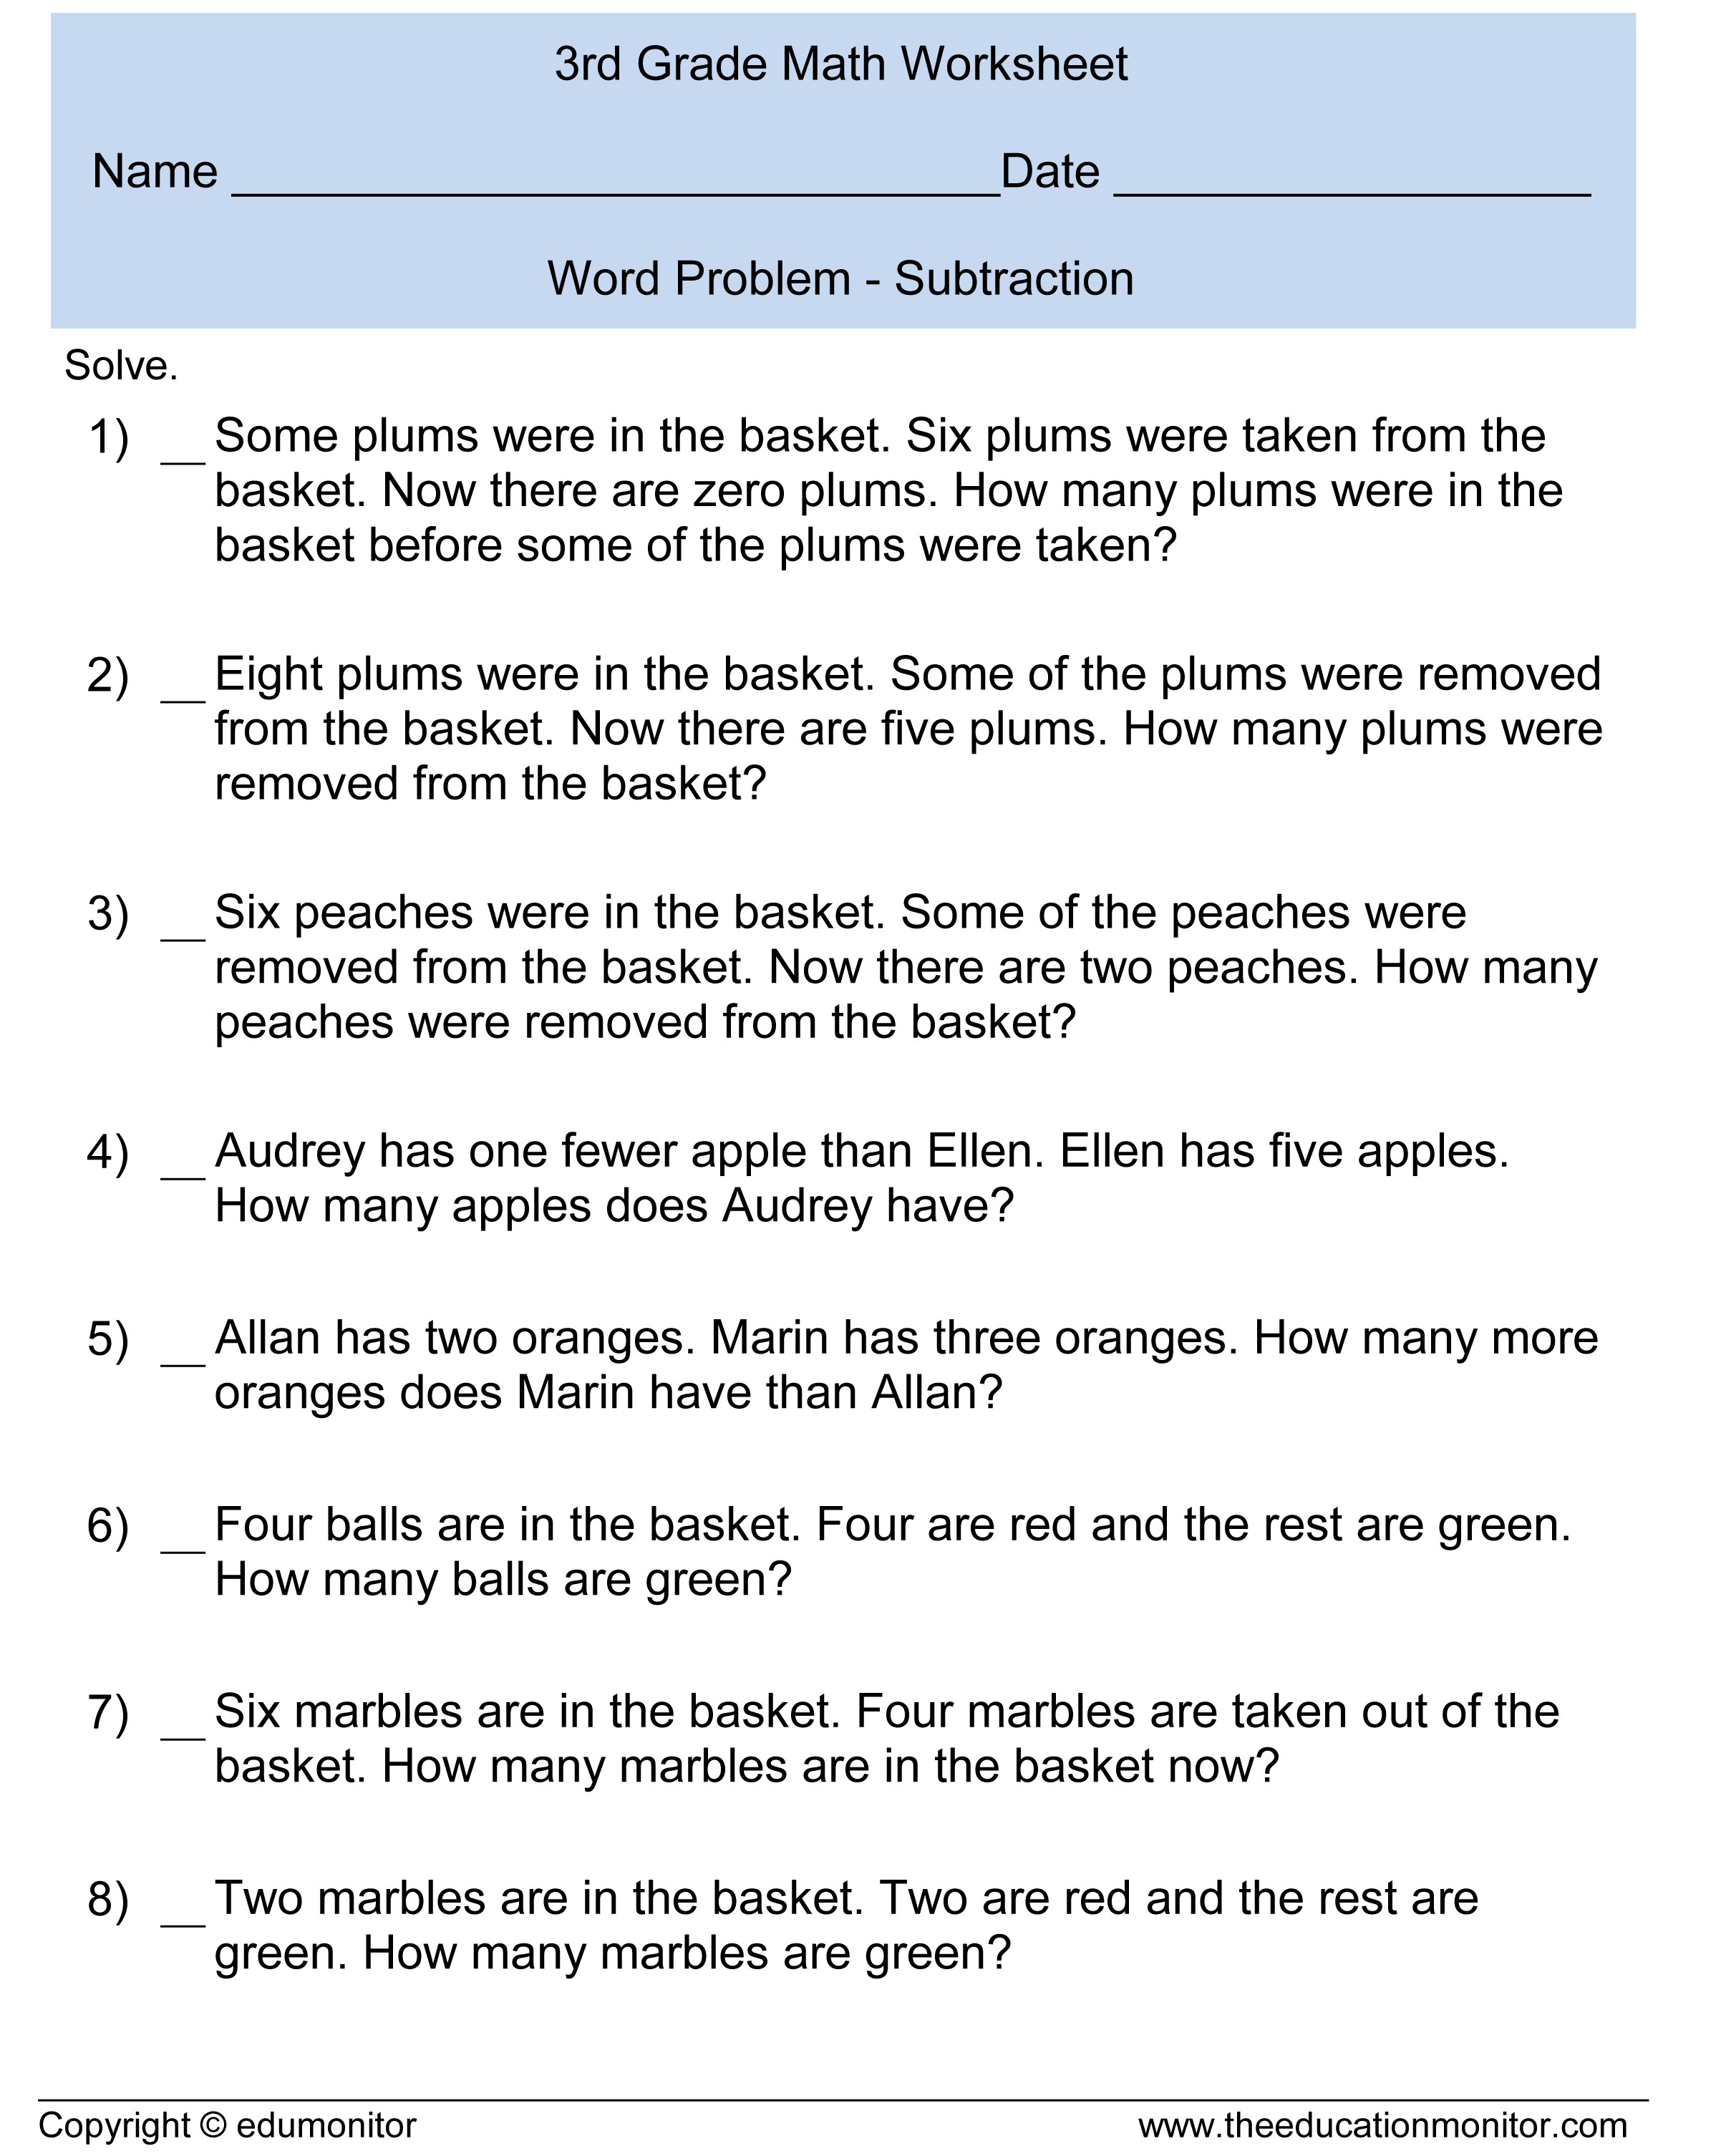 Third Grade Subtraction Word Problems 3rd Grade Math